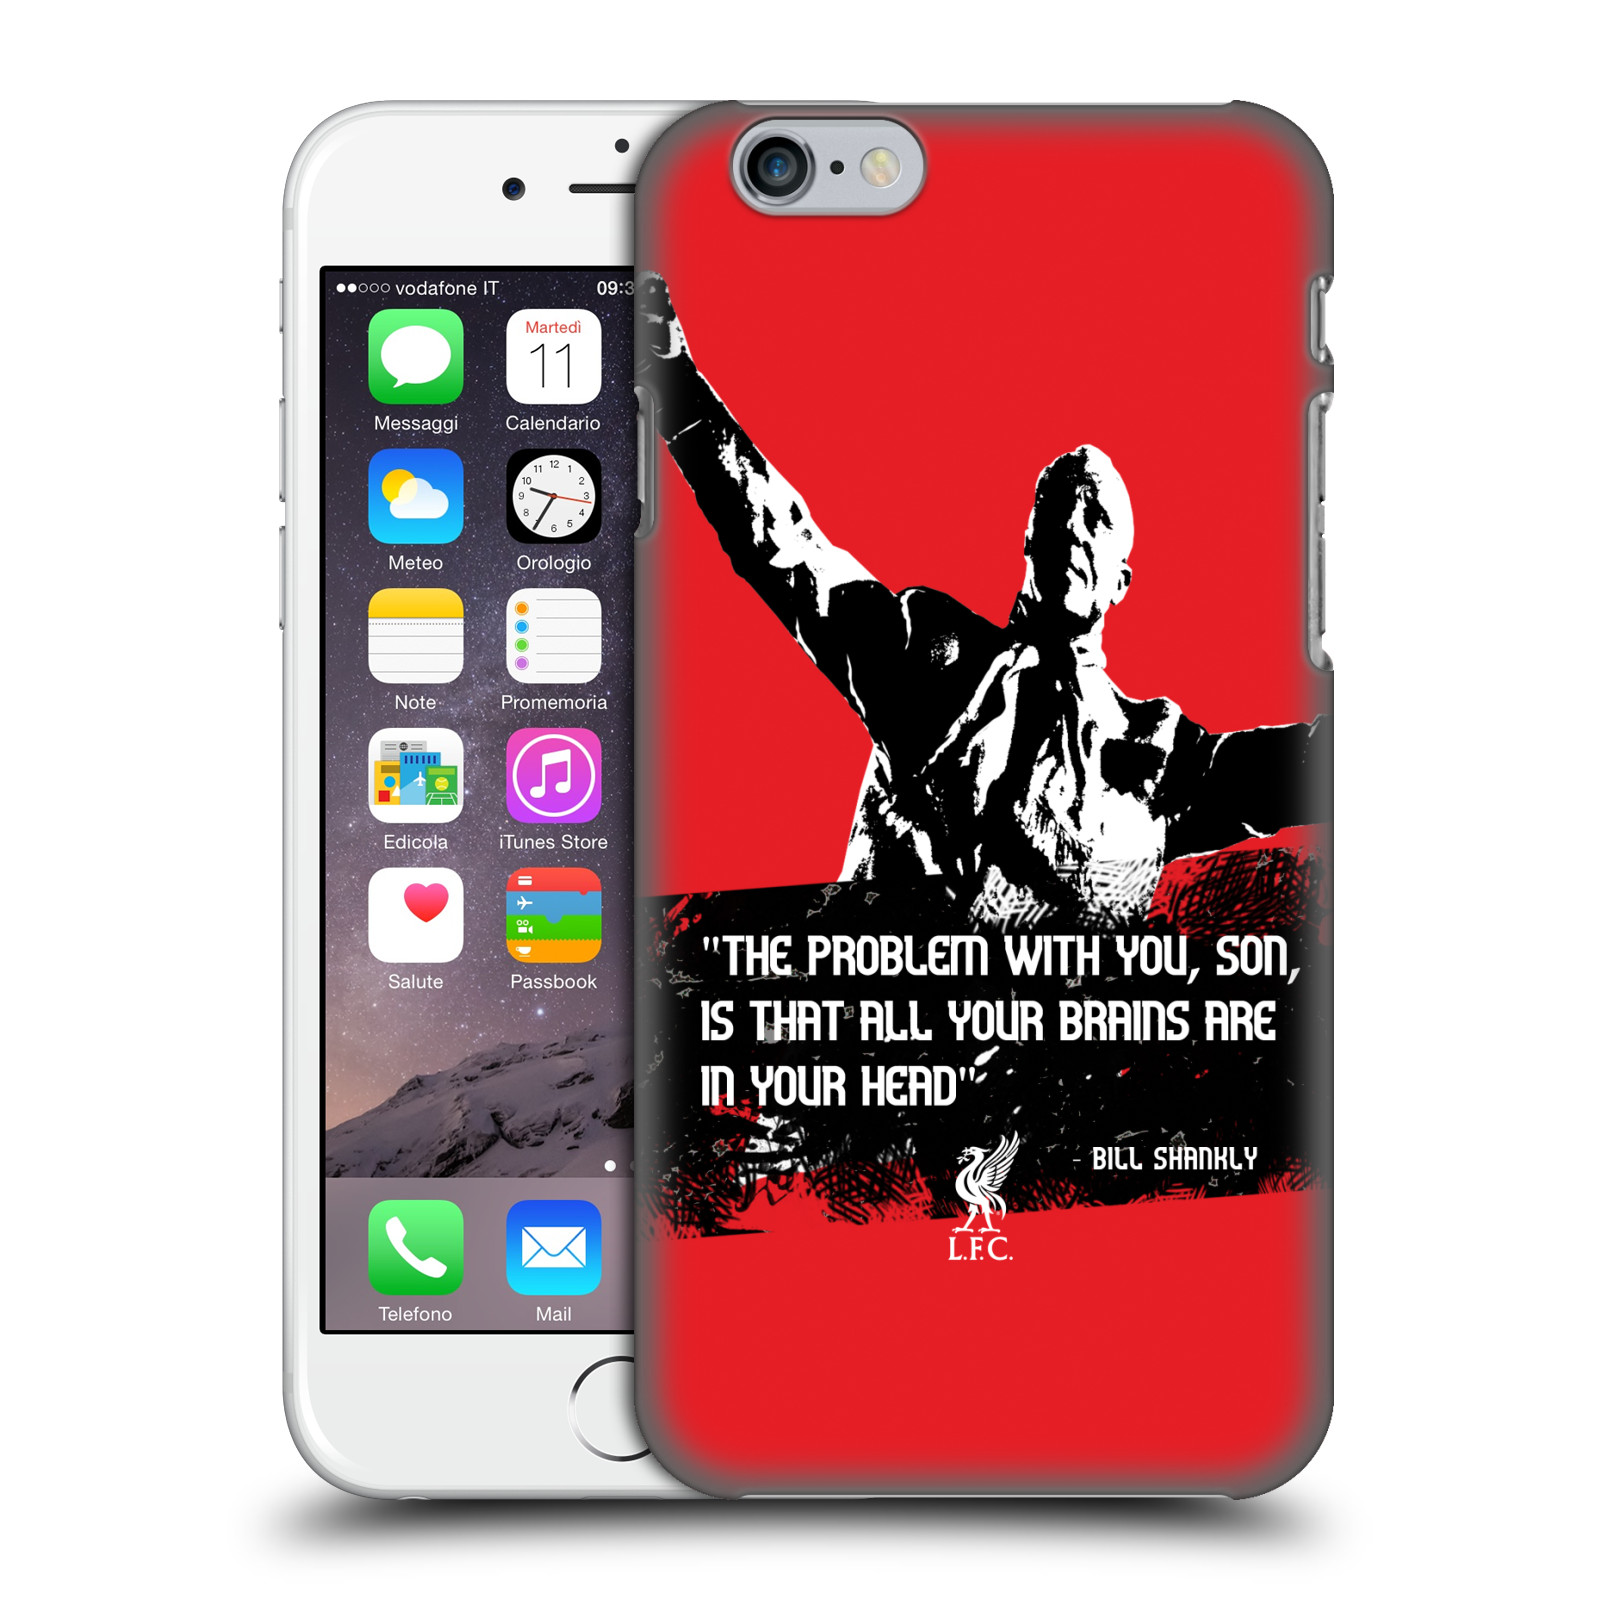 Liverpool FC LFC Bill Shankly Quotes-Problem Medium